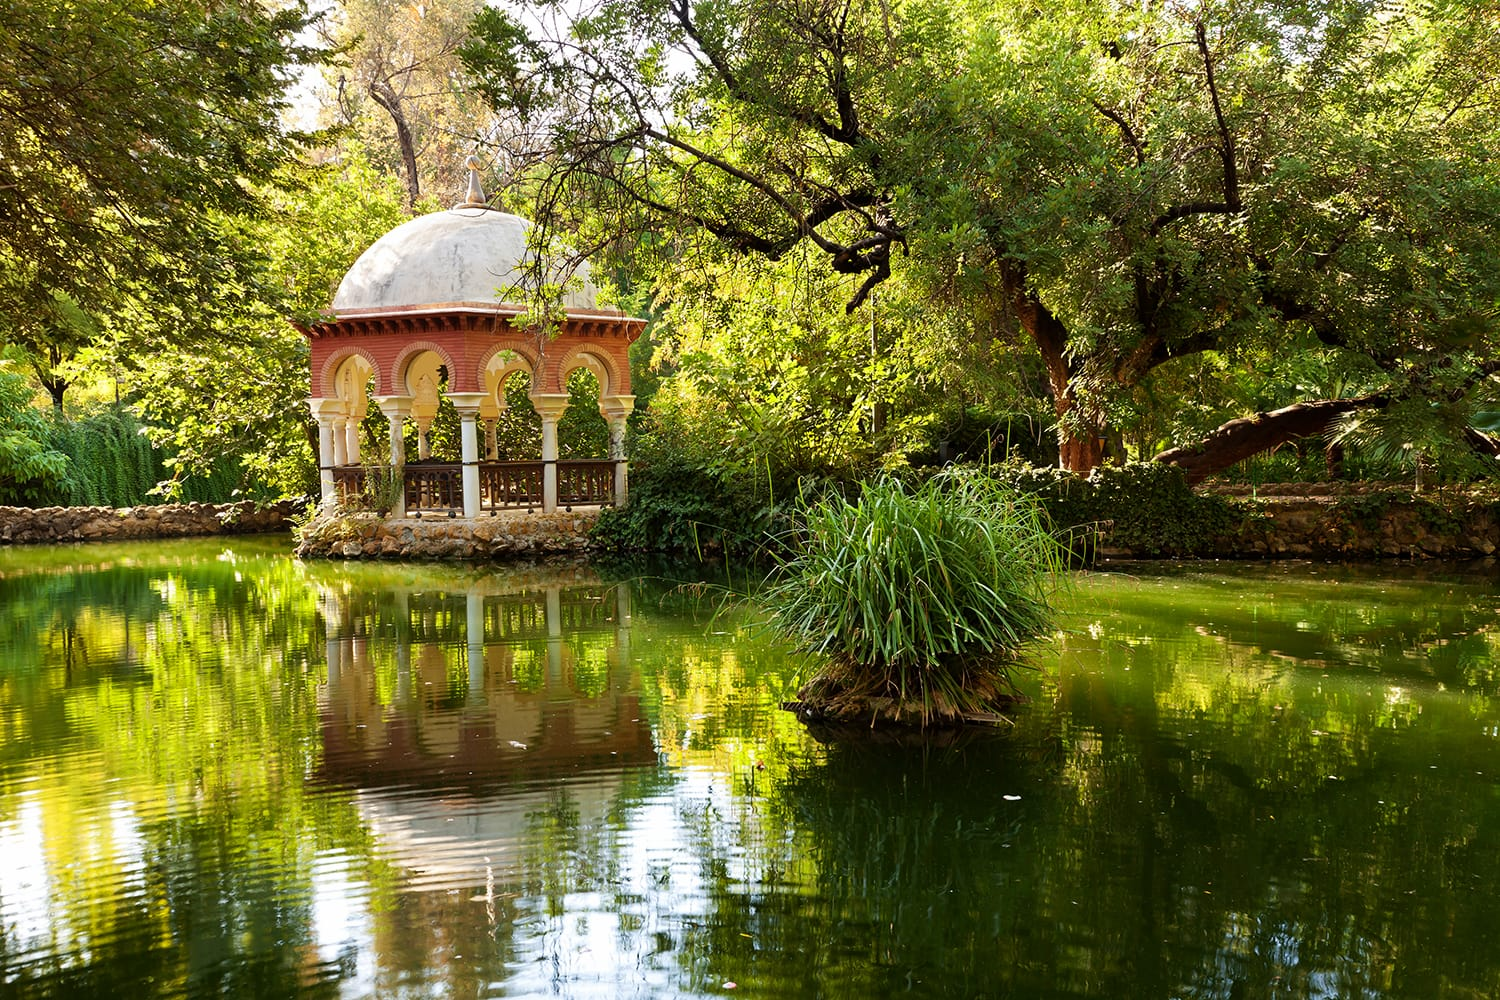 Romantic pavilion reflected in a pond. Parque Maria Luisa of Sevilla, Spain